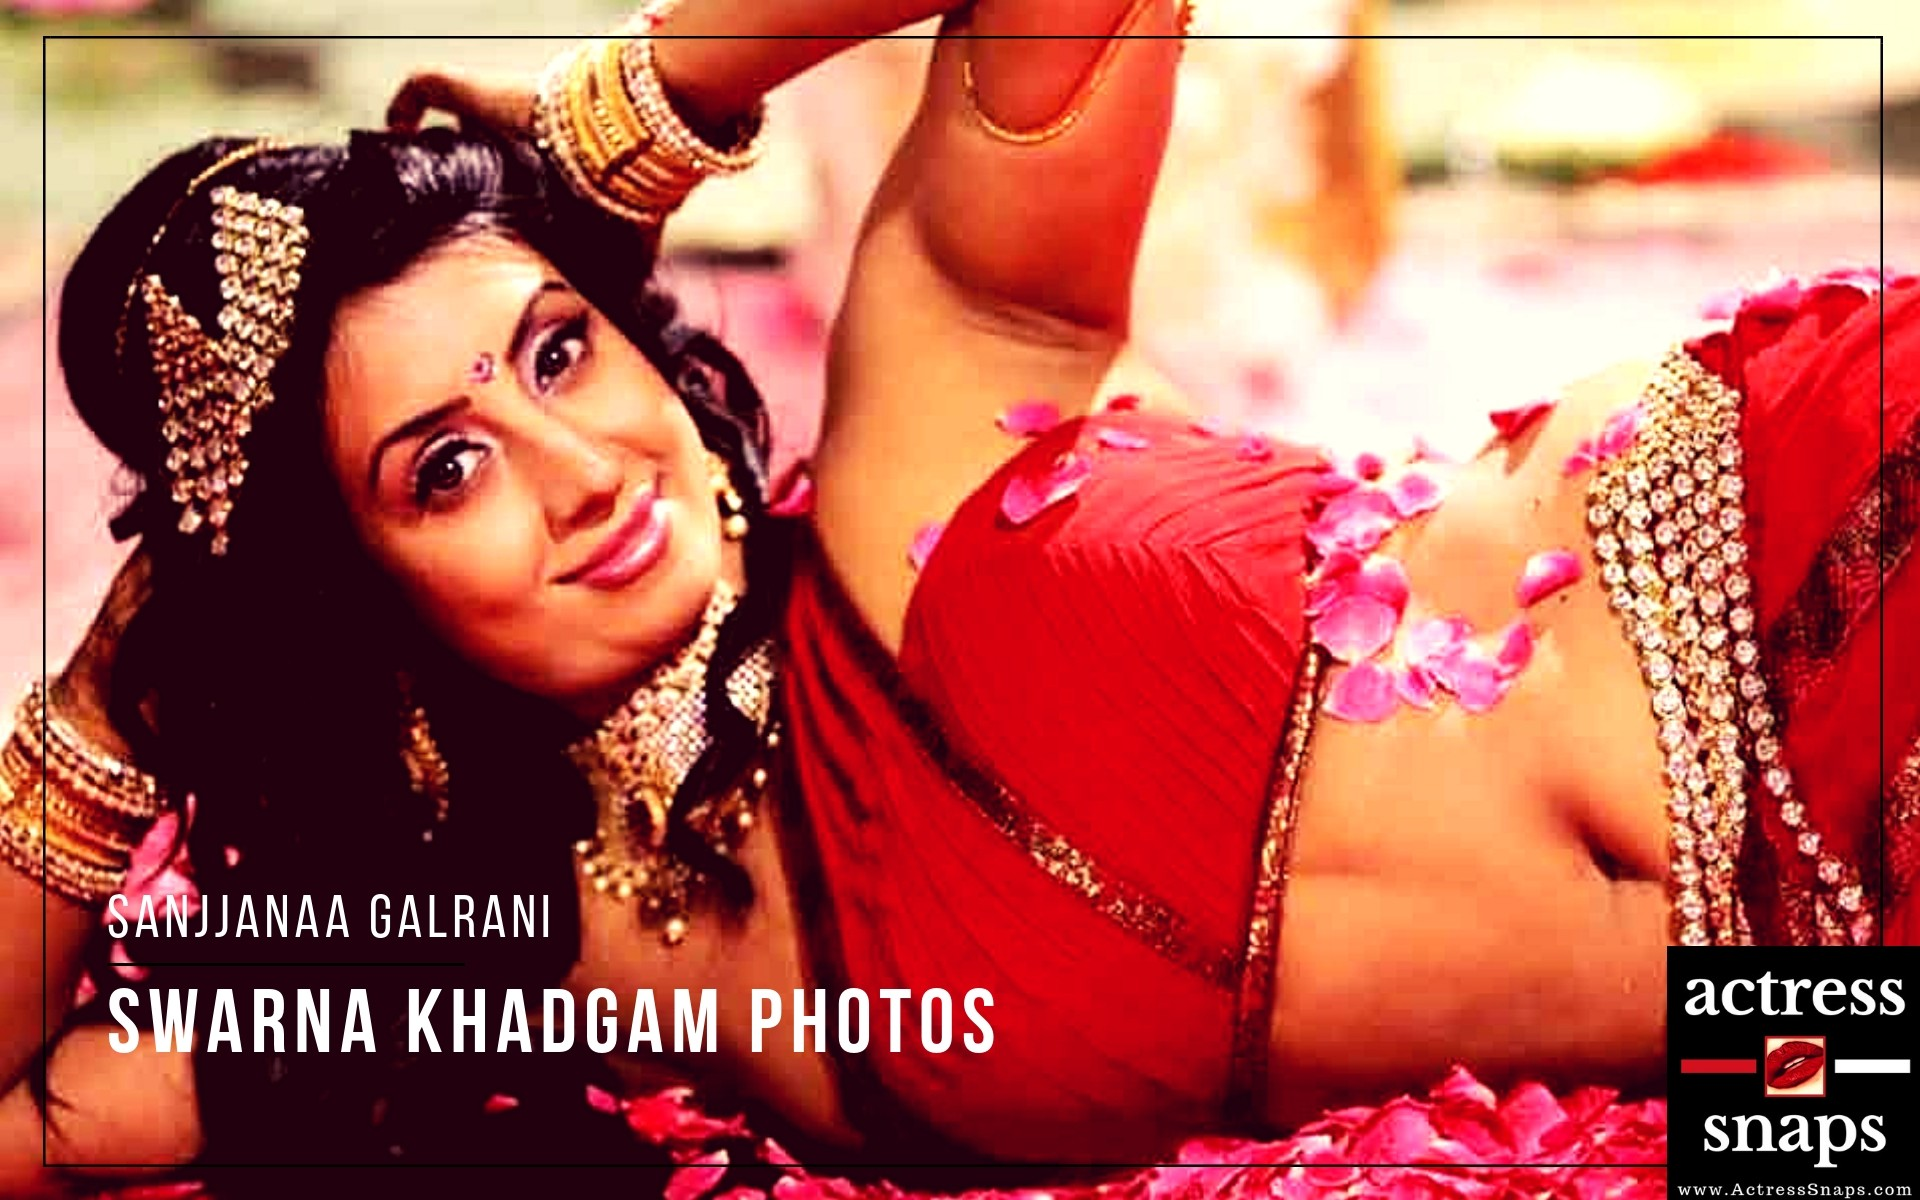 Sexy Sanjjanaa Galrani in Swarna Khadgam - Sexy Actress Pictures | Hot Actress Pictures - ActressSnaps.com